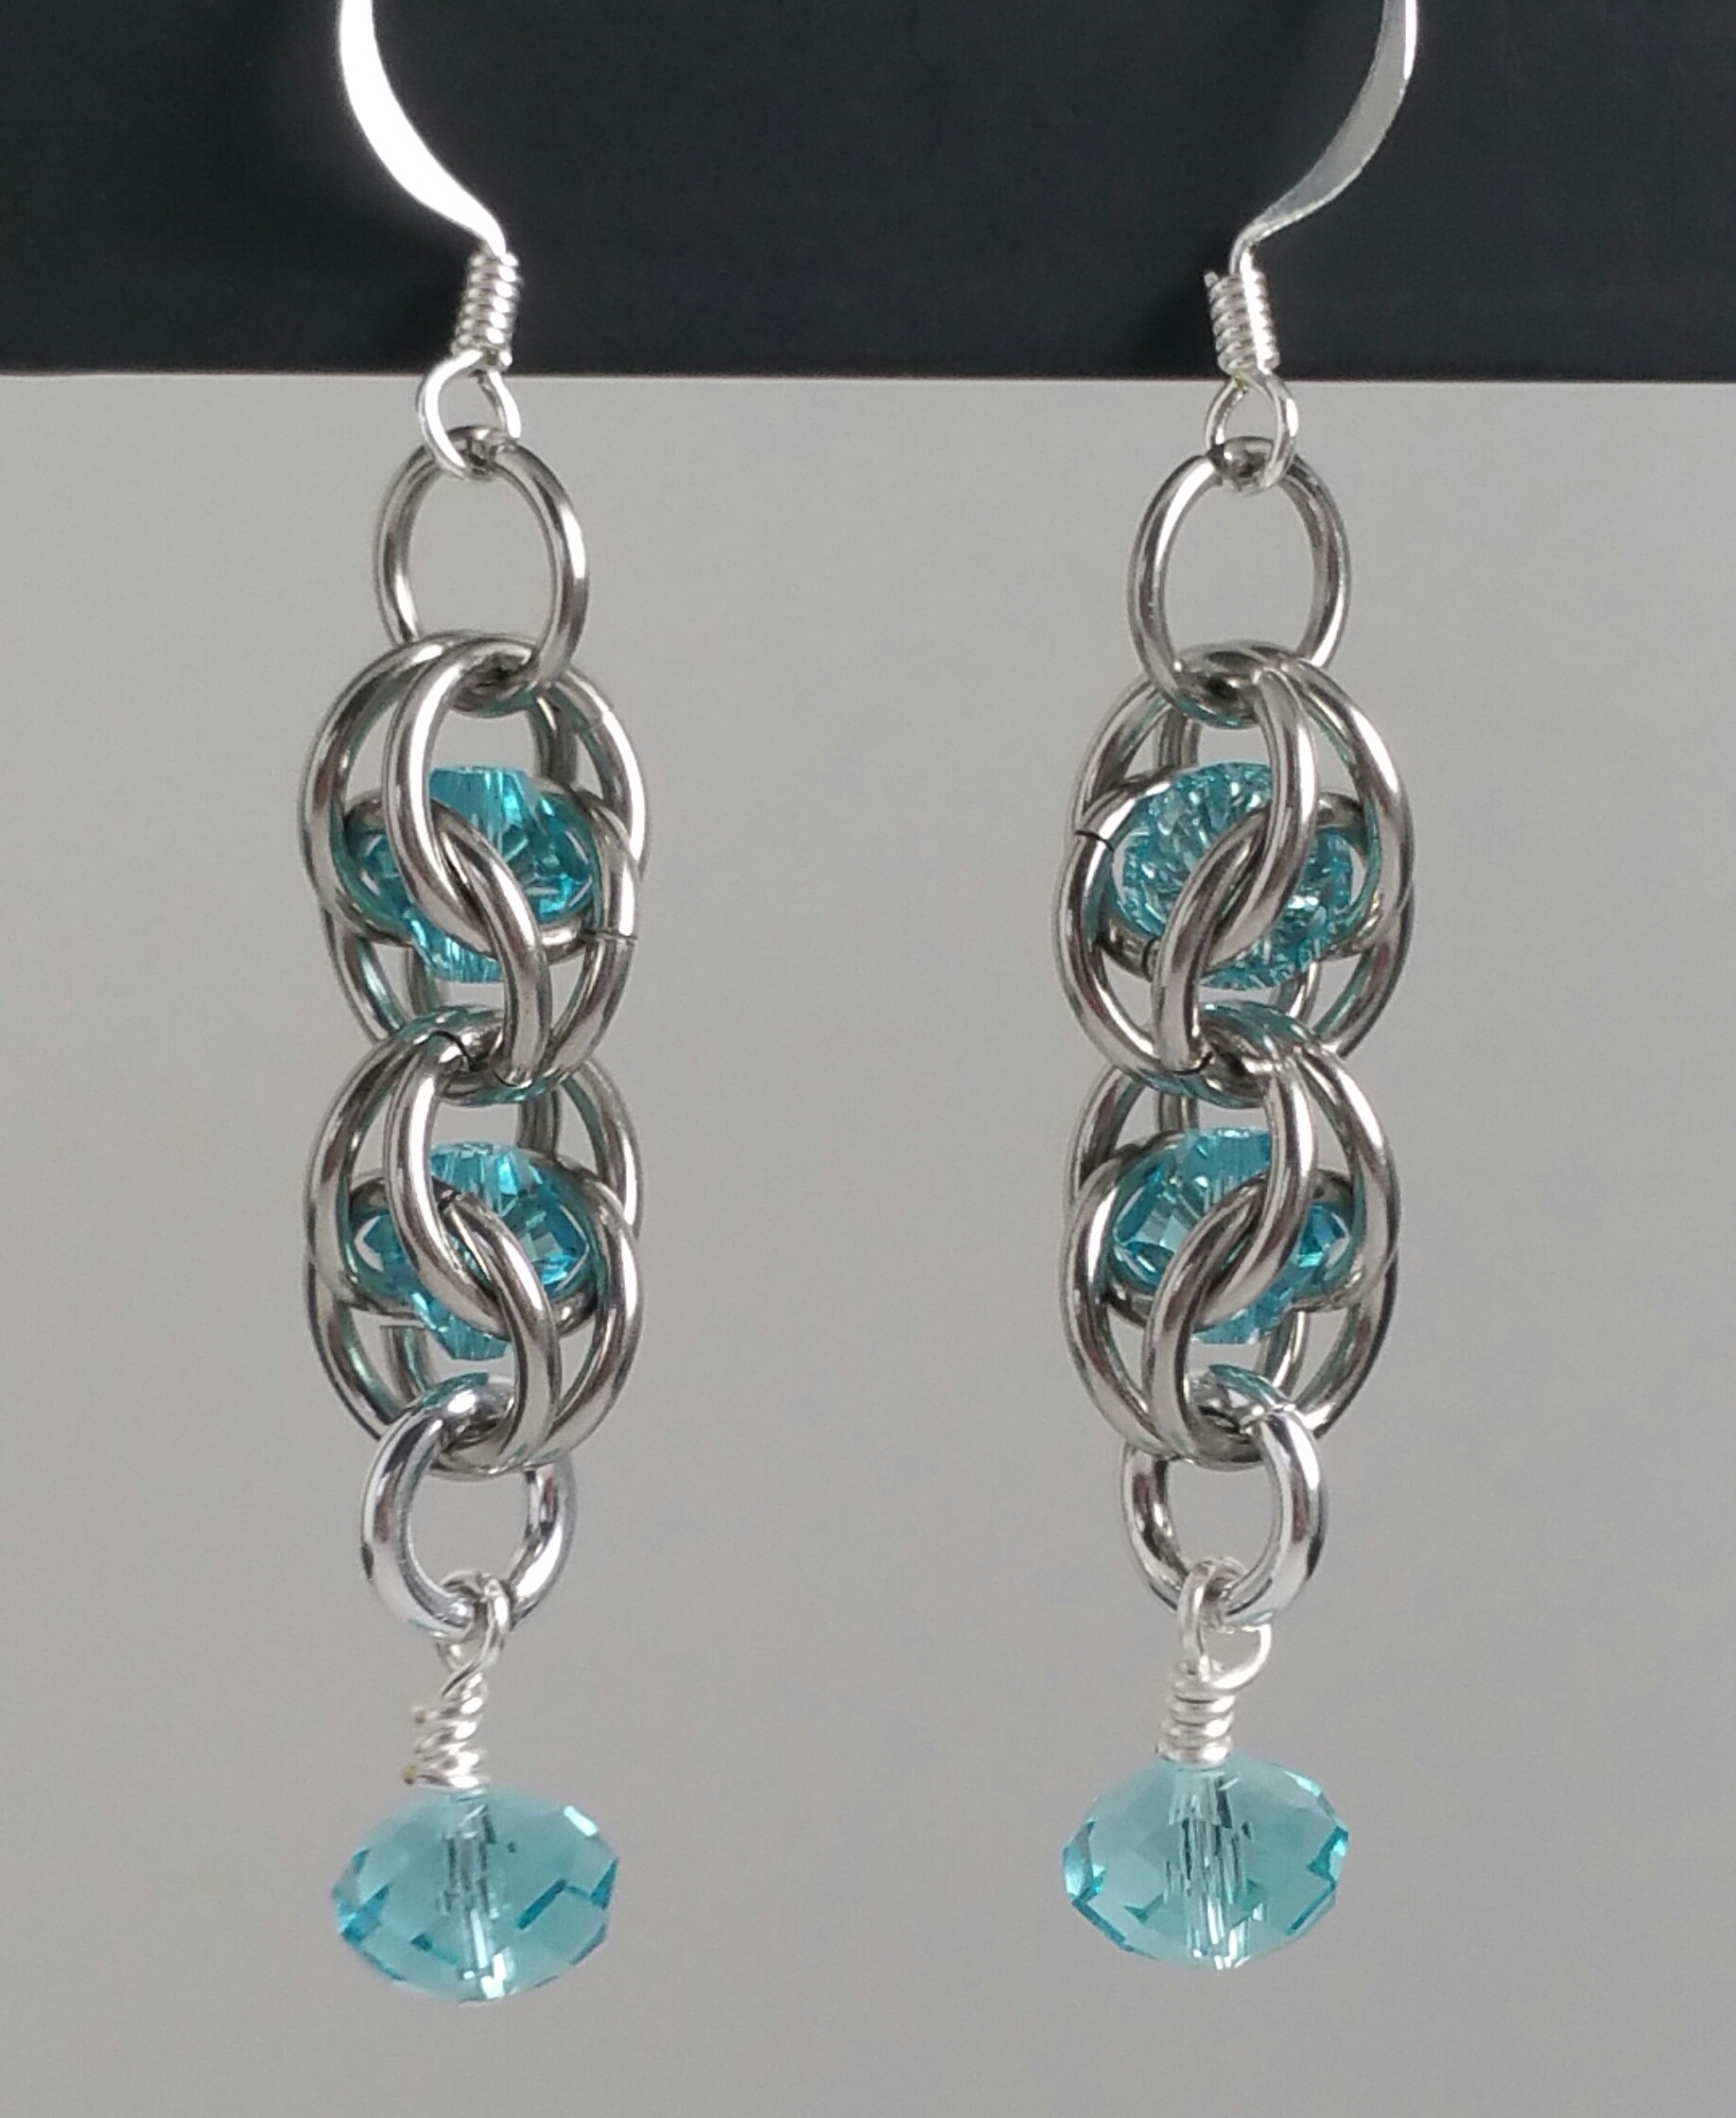 1-Swarovski  captured earrings 2 inches.